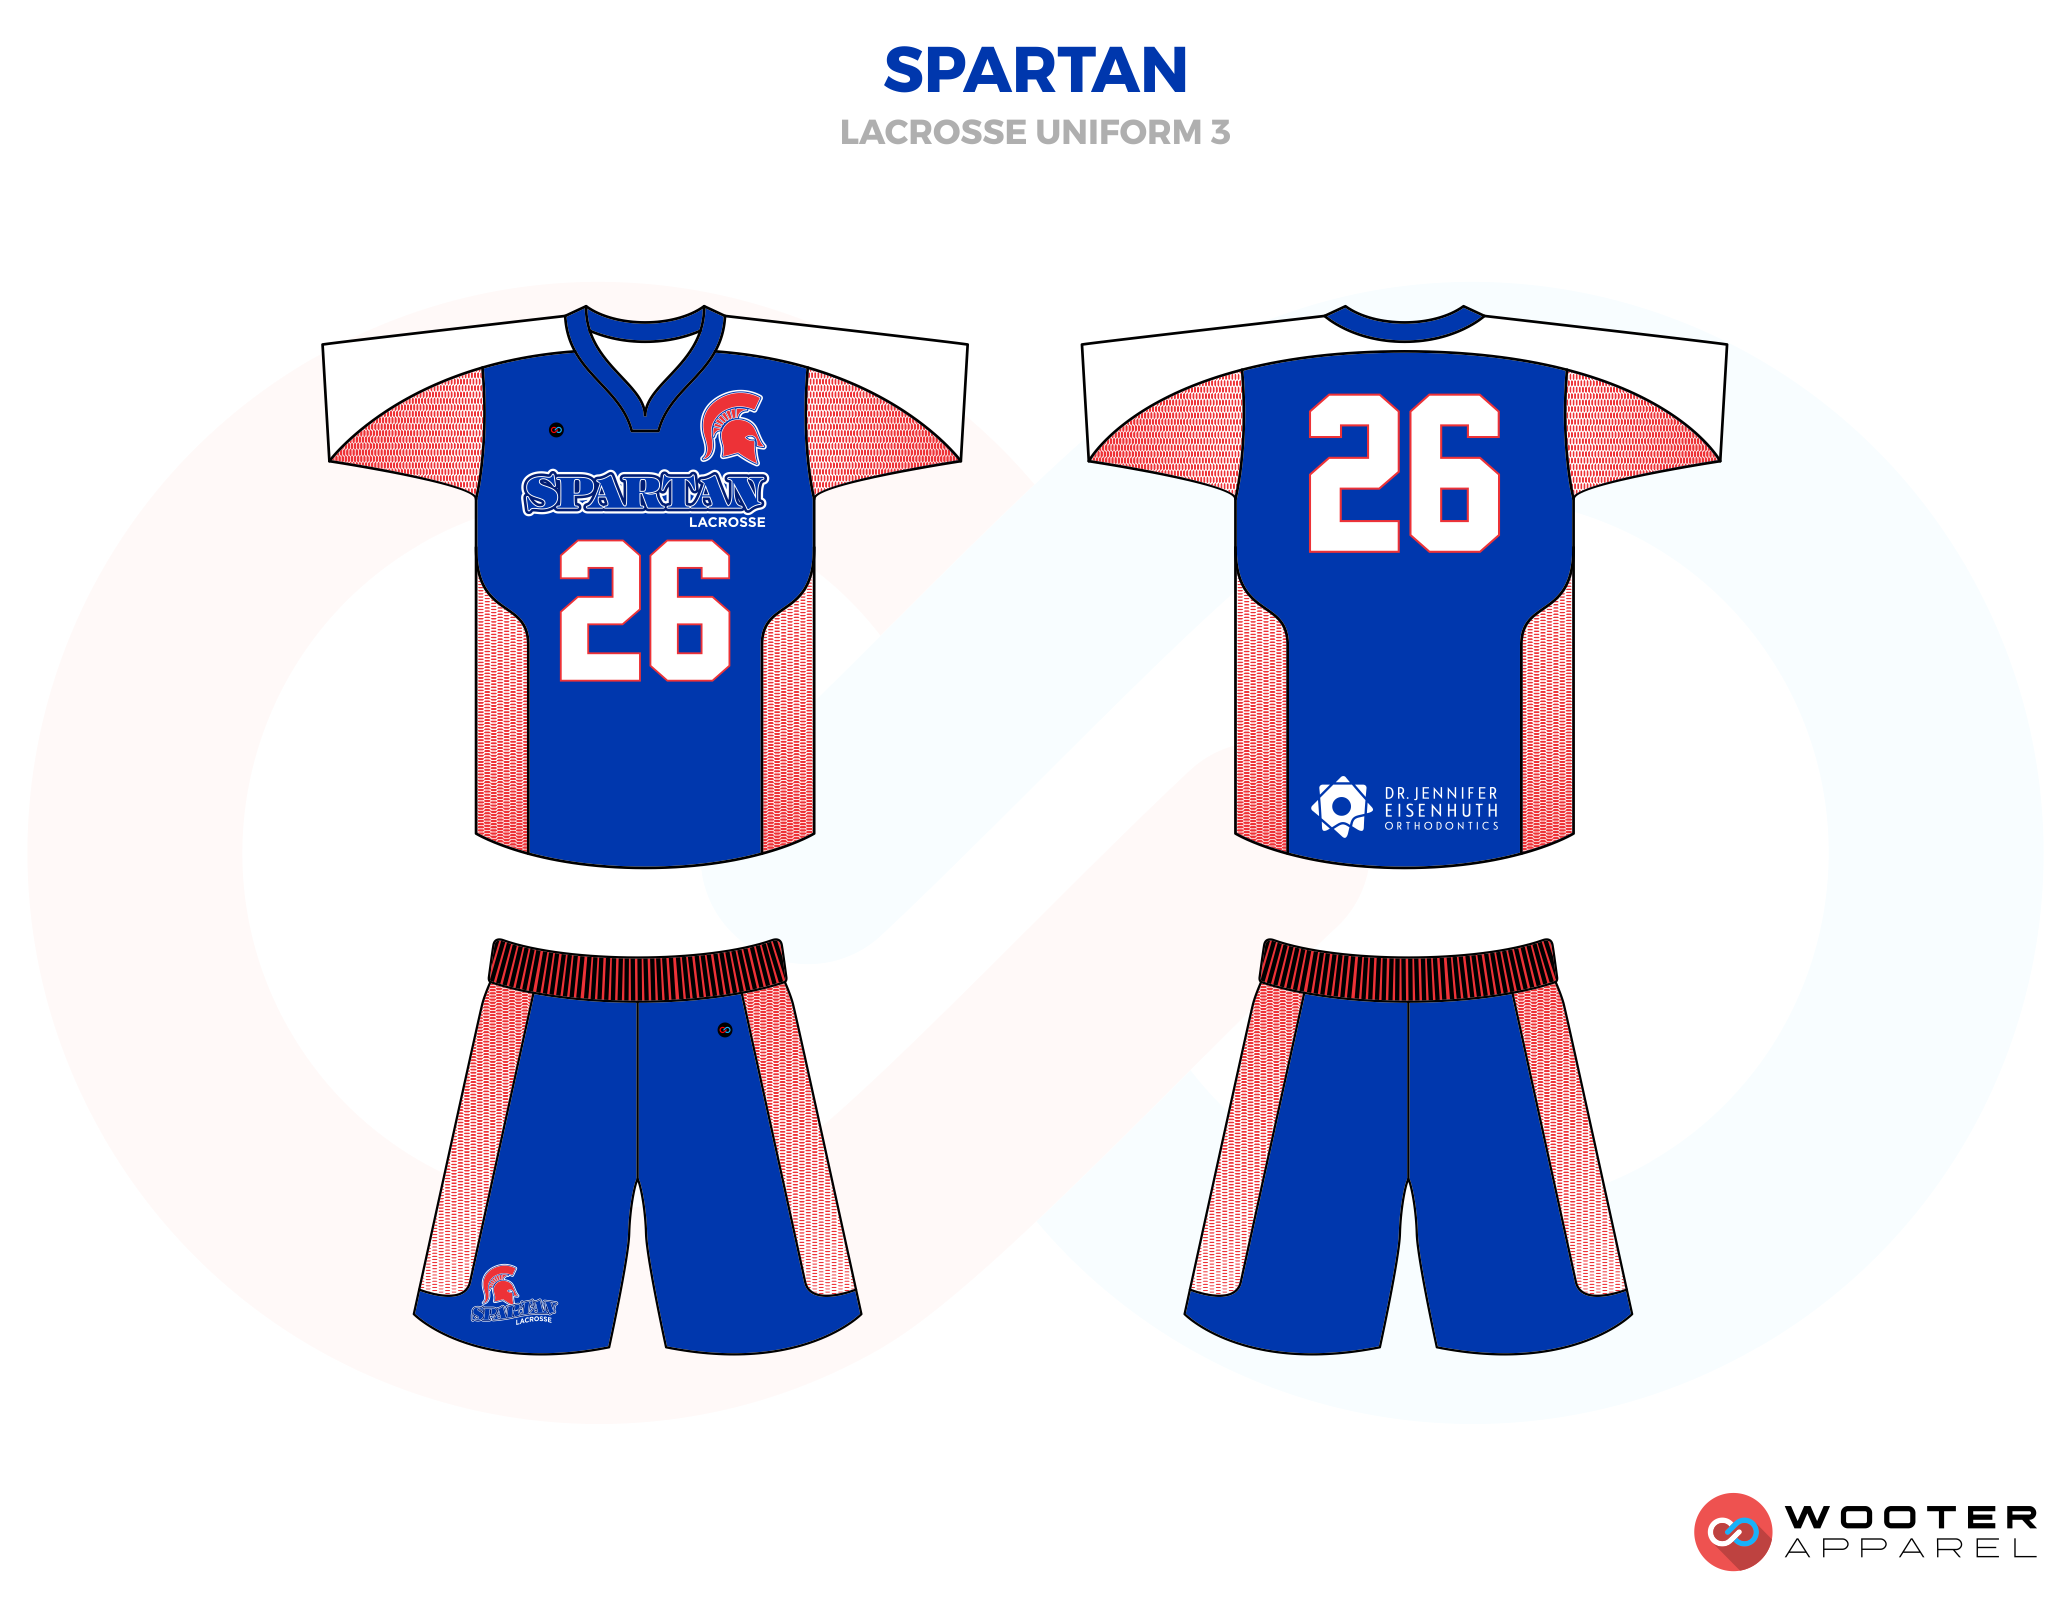 Spartan Blue Red and White Lacrosse Uniforms, Reversible Pinnies, Jerseys, Shorts